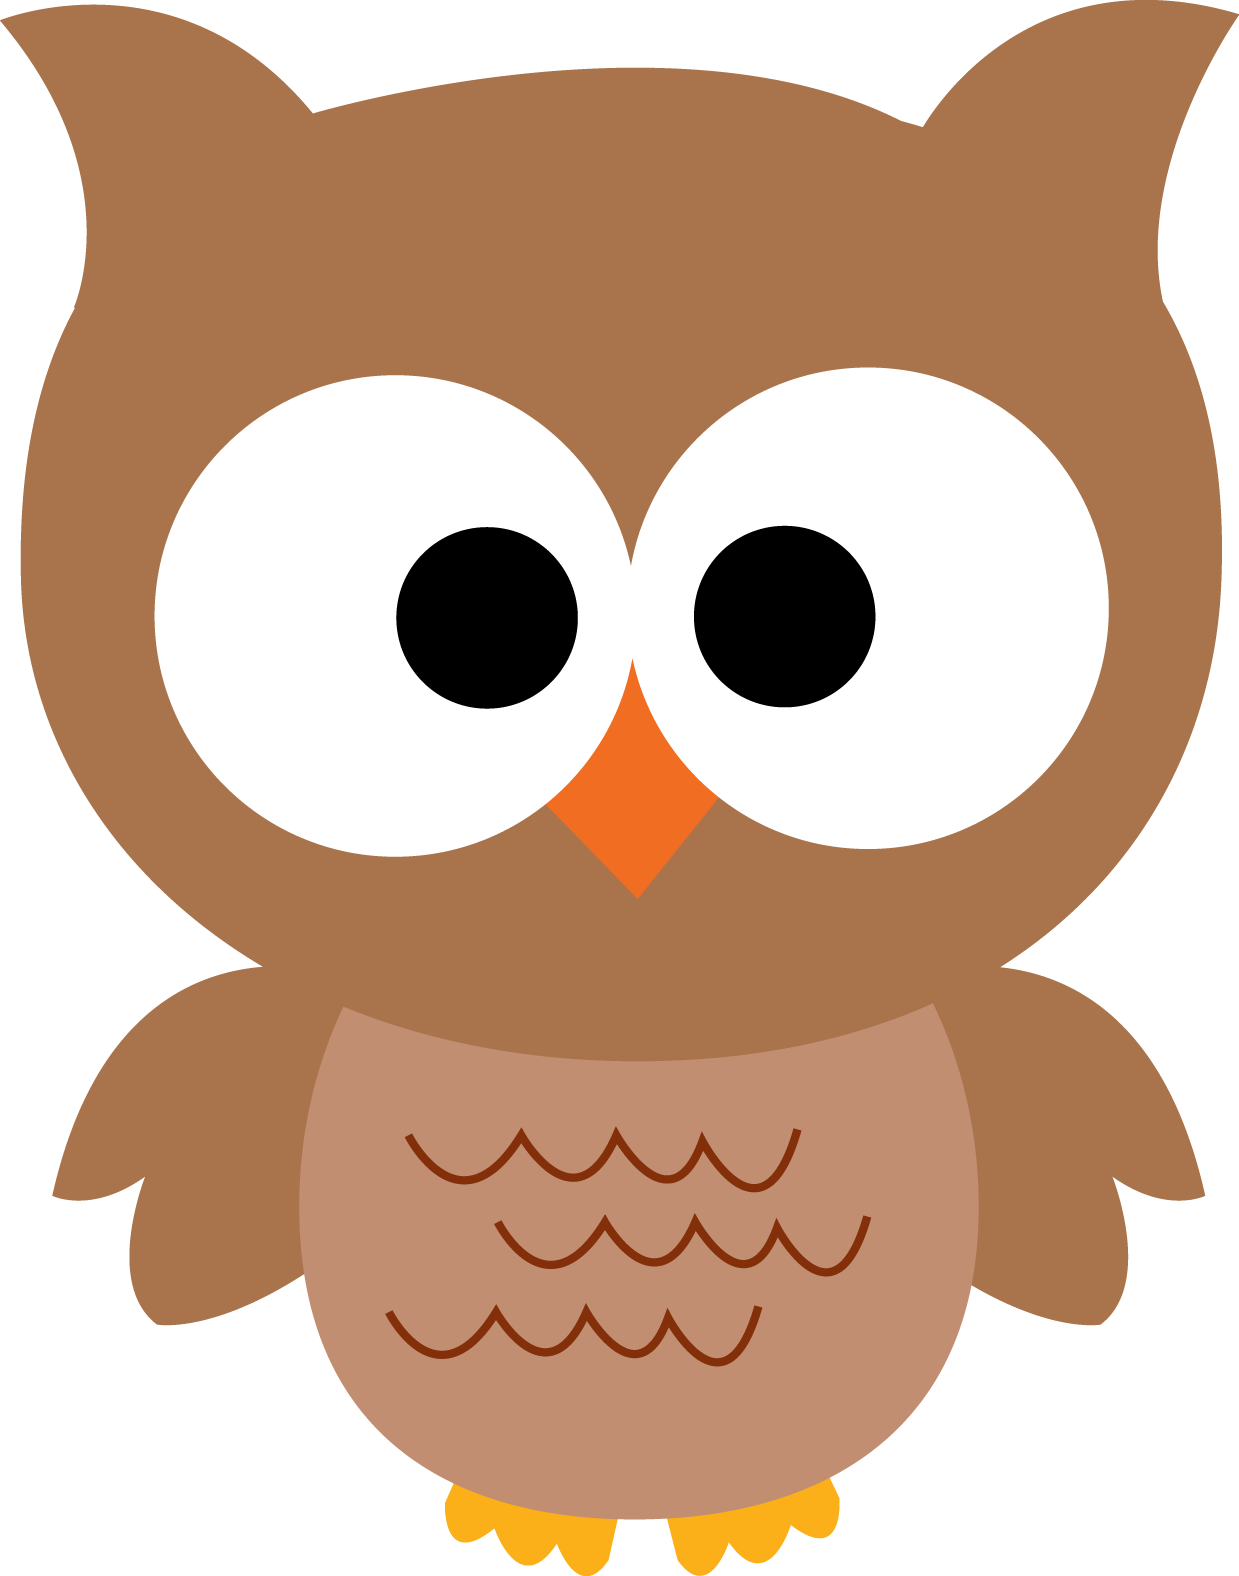 Clip Art Of Owl Free Cartoon .-Clip art of owl free cartoon .-3